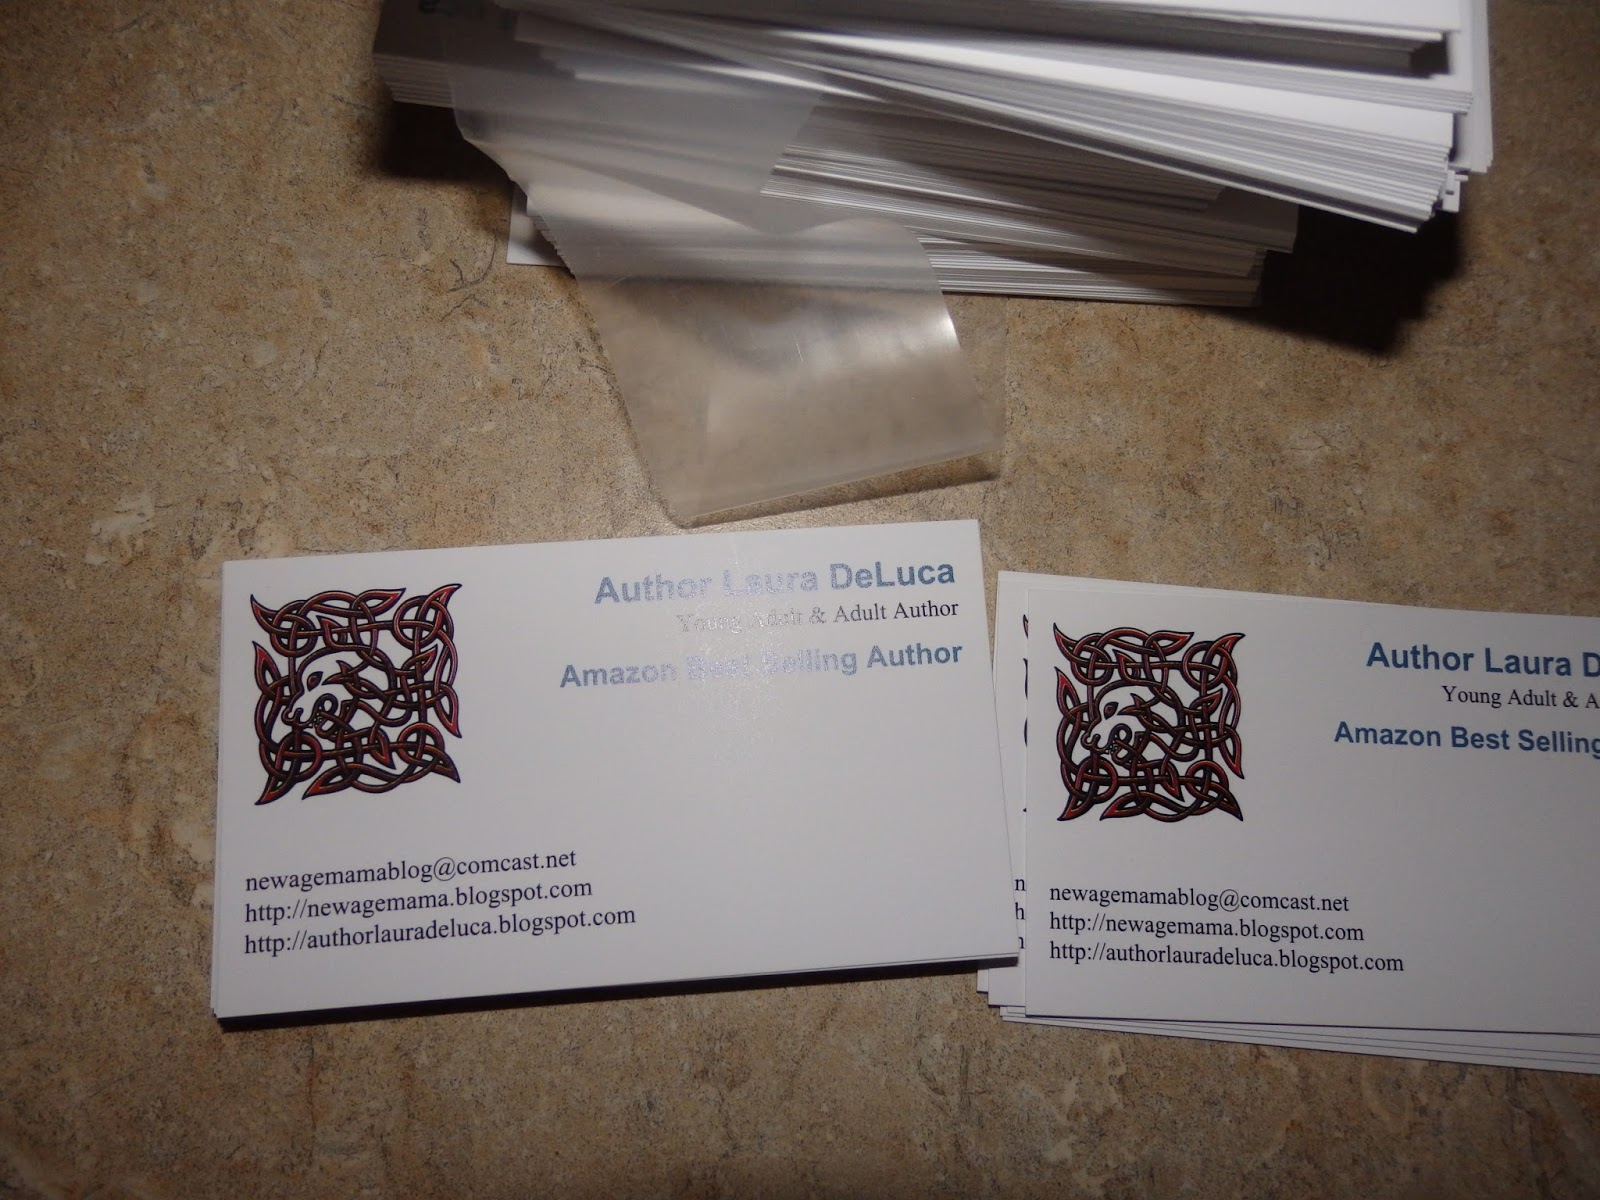 New age mama affordable business cards delivered quick from staples so i hand them my business card and i know it works because the last time i was at the dentist my hygienist pulled my book out of her handbag and asked me reheart Gallery